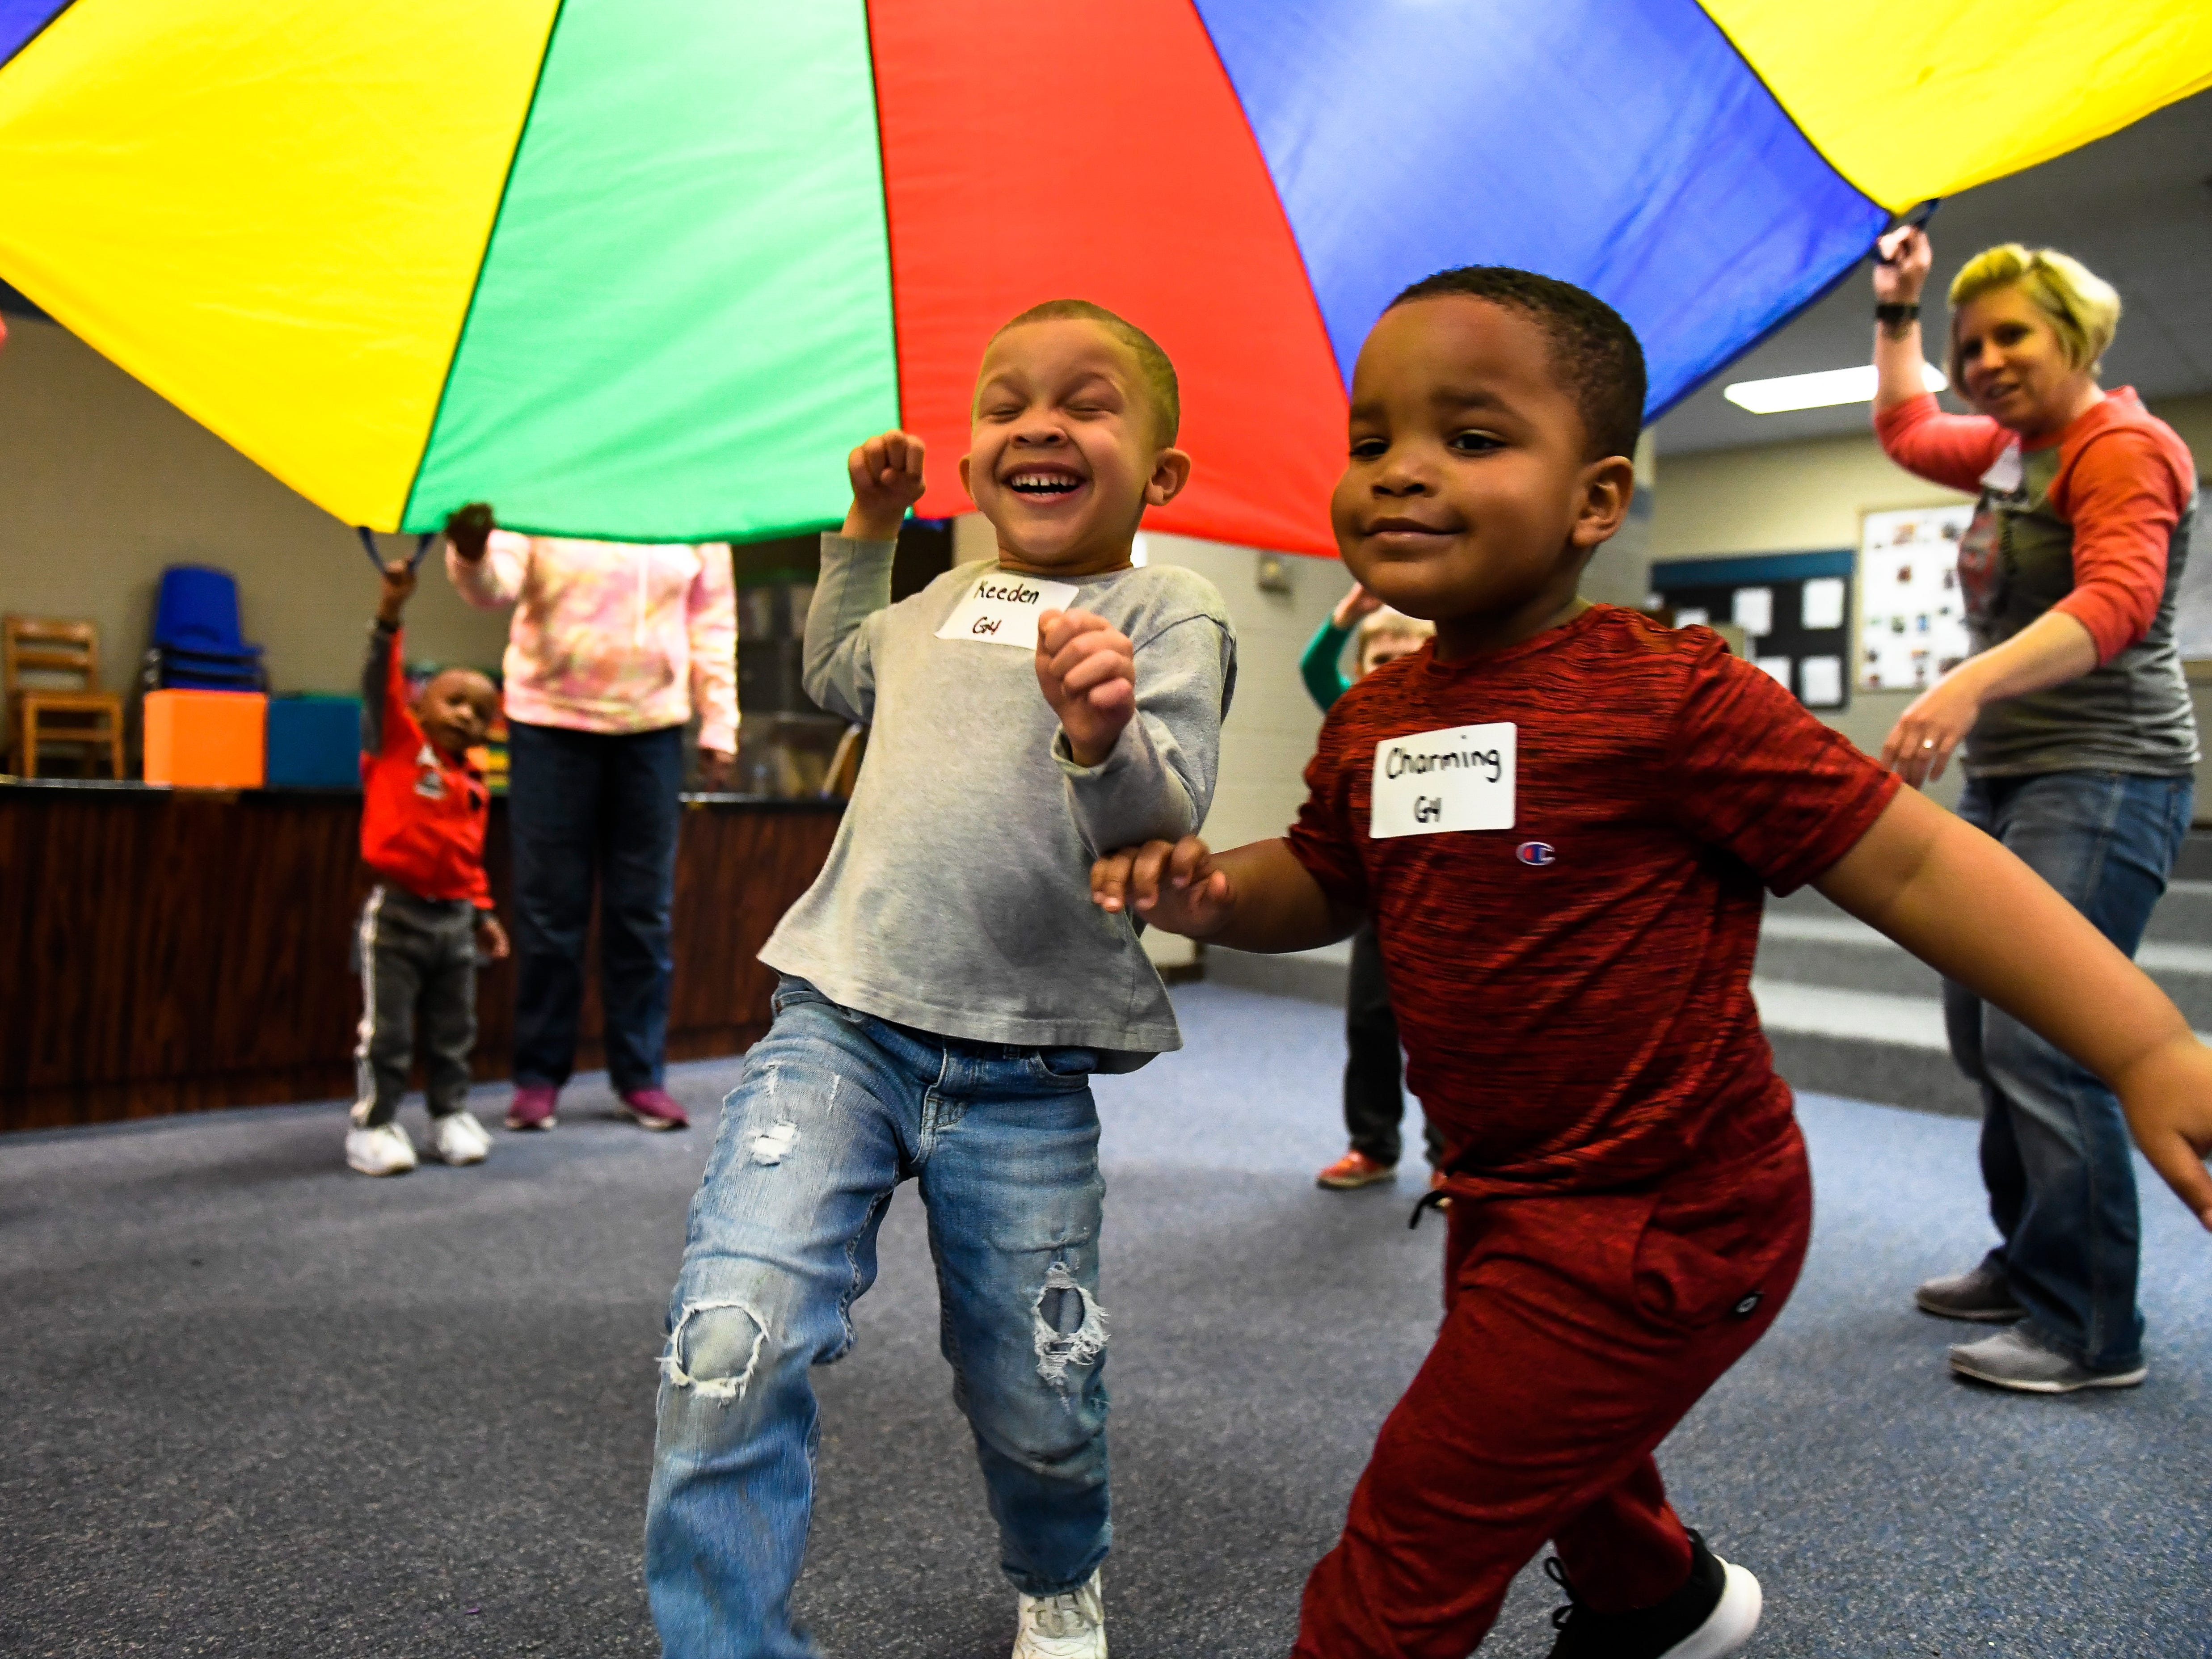 Keeden Roach, 5 years-old, left, and Charming Leach, 3 years-old, play under the parachute during the Special Olympics Unified Champion School Young Athlete program at Culver Early Learning Center Friday, March 22, 2019.